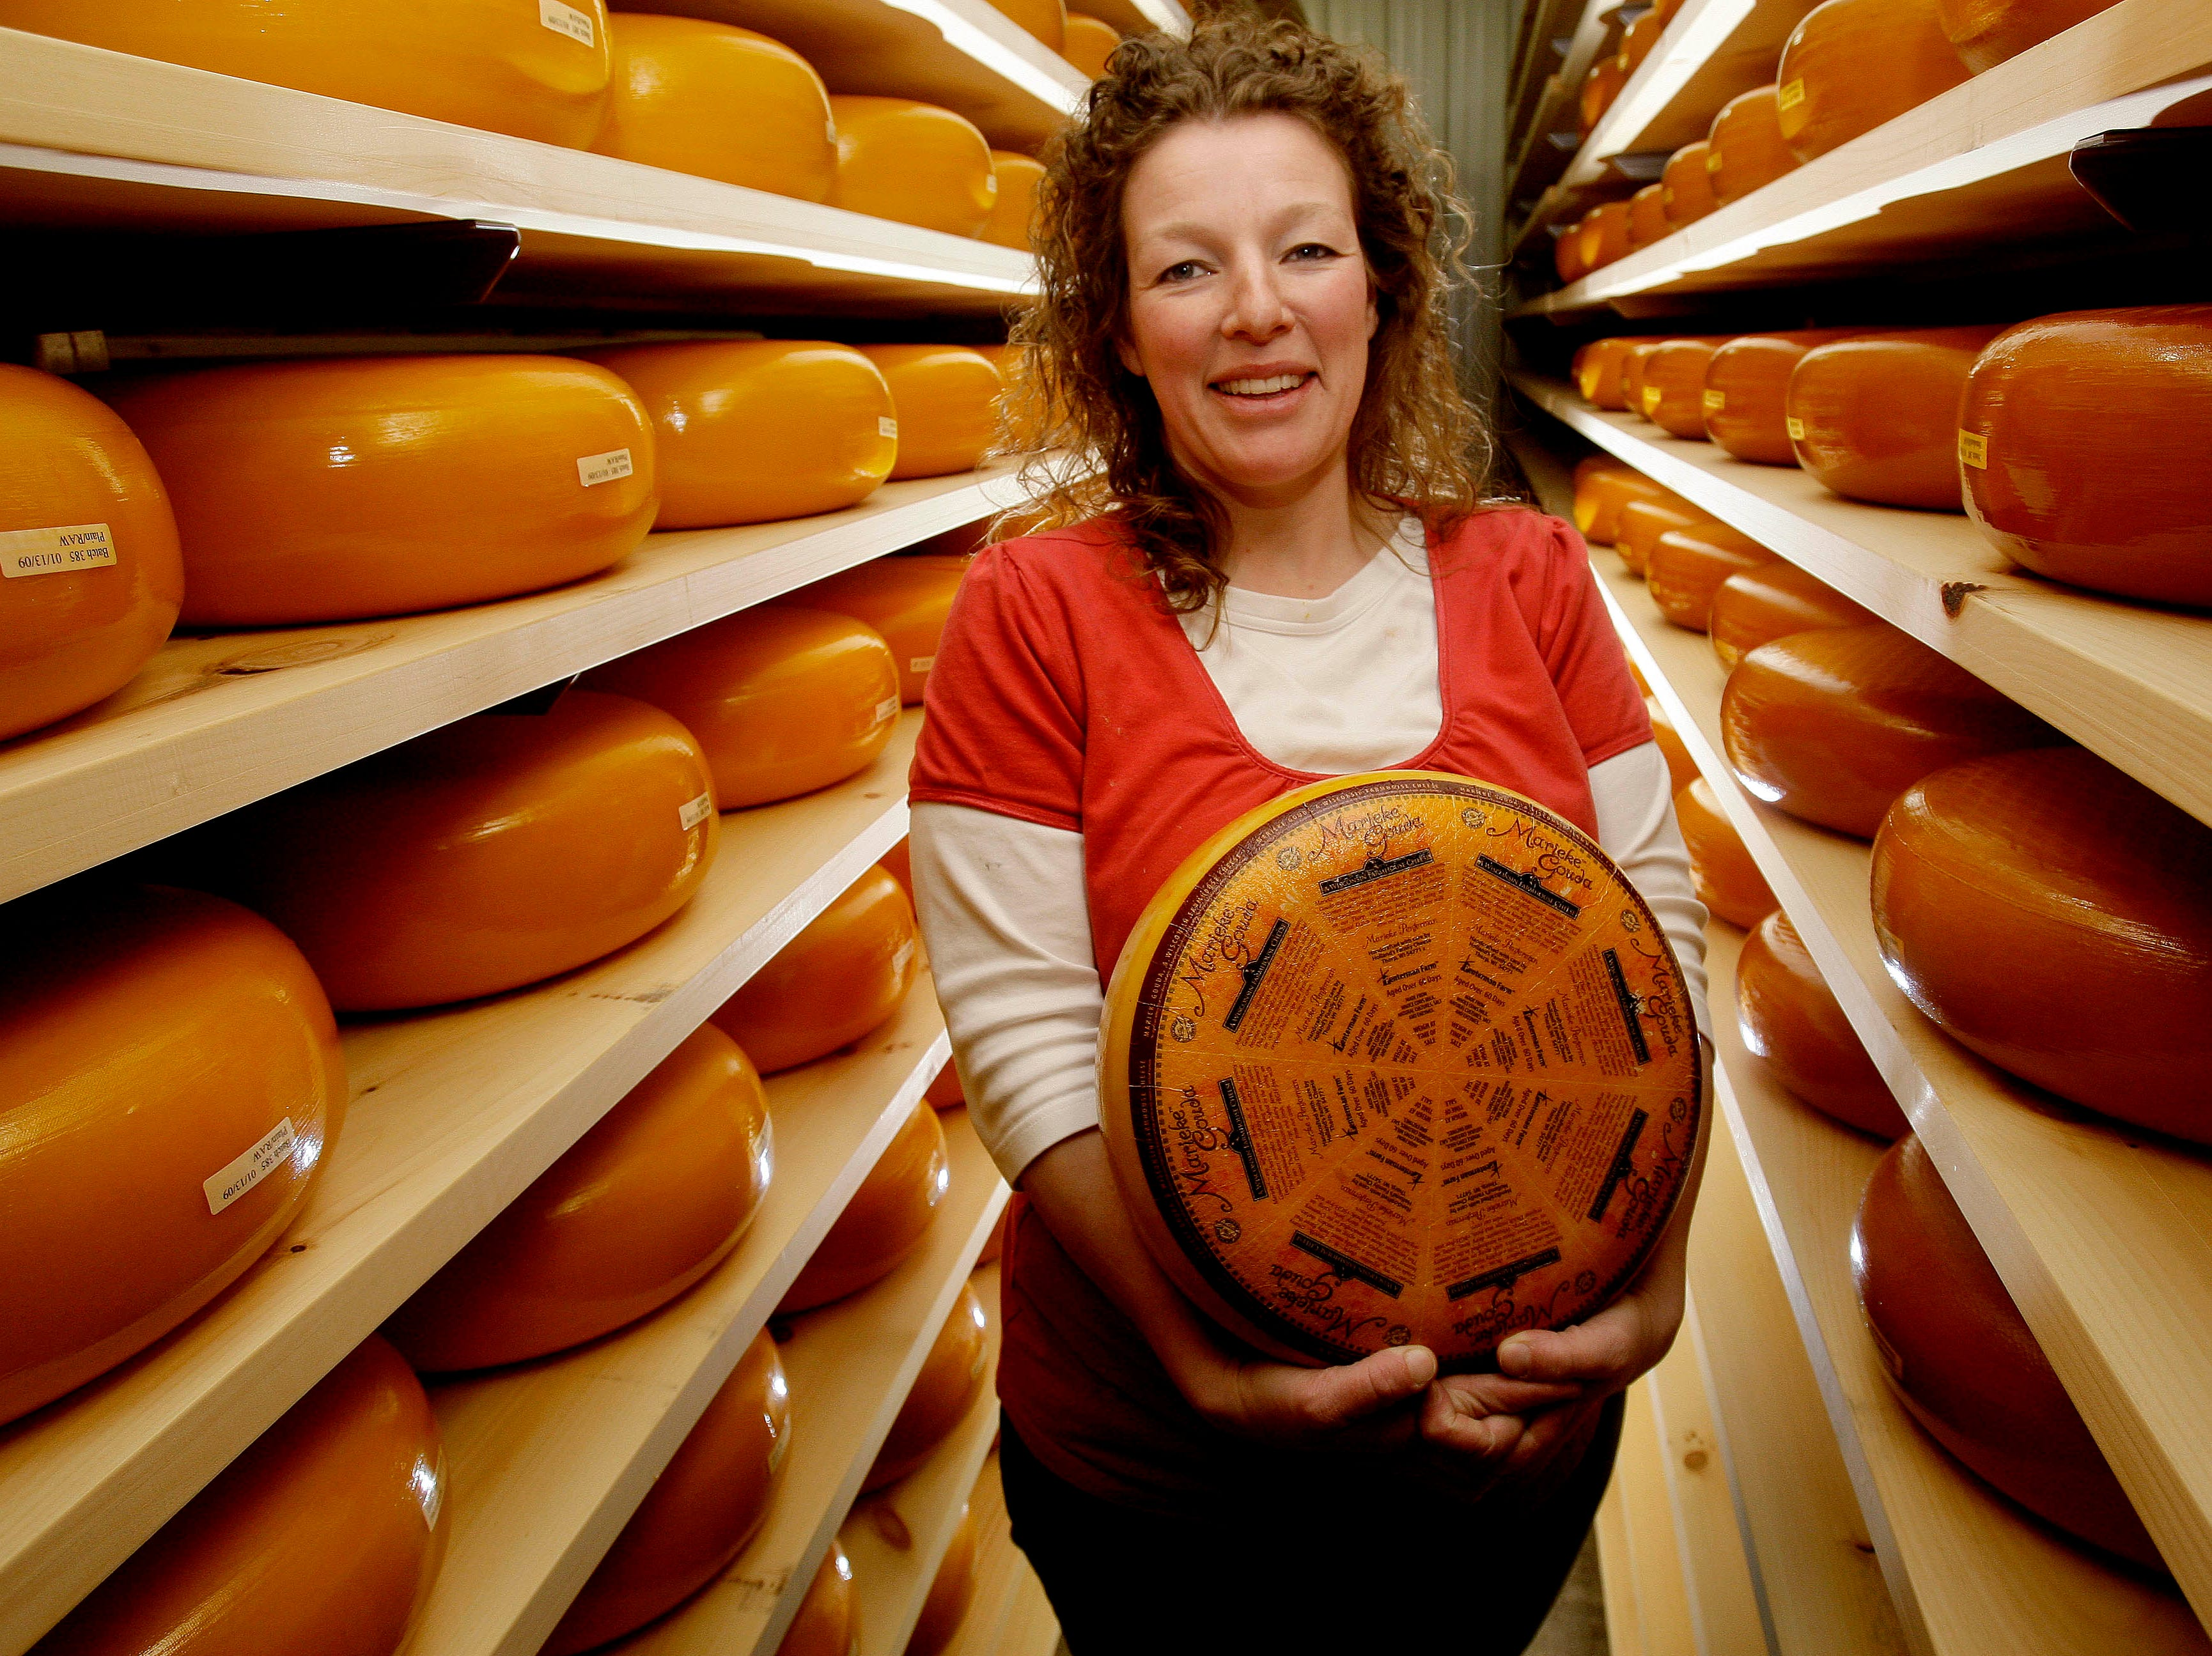 2009: Sometimes the competition dairy producers encounter is imported. Marieke Penterman is shown in the aging room at Holland's Family Farm in Thorp. Marieke and Rolf Penterman emigrated from the Netherlands in 2002 to pursue their passion for dairy farming. At the 2007 U.S. Championship Cheese Contest held in Milwaukee, Marieke won Best of Class in the Open Class for Flavored Semi-soft Cheeses with her Feonegreek Gouda.